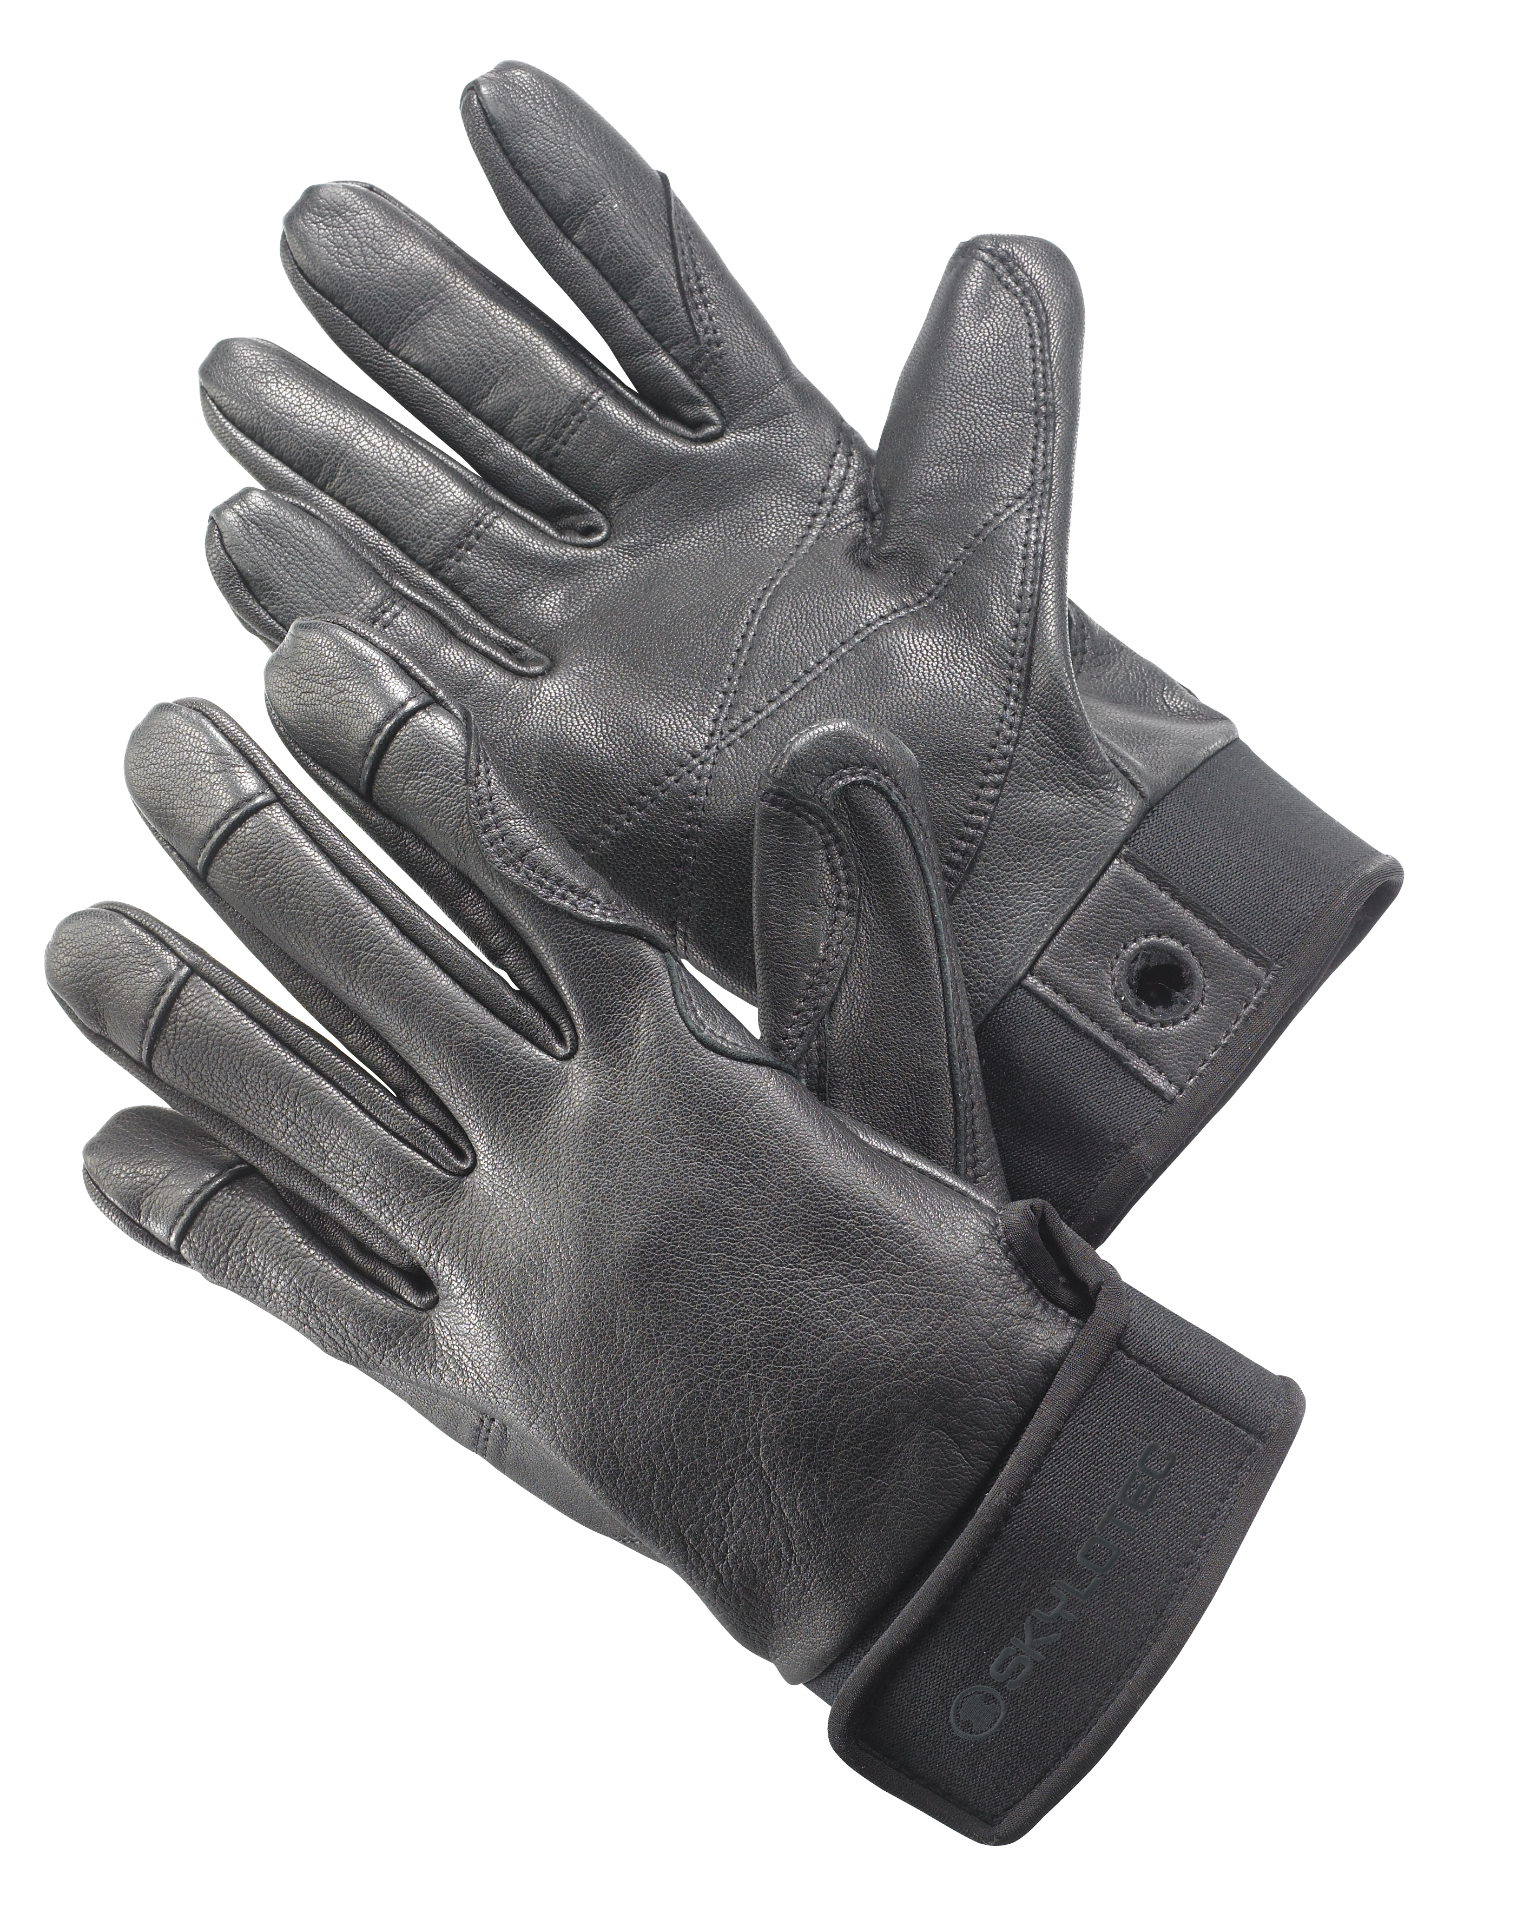 Skylotec Tactical Gloves Leather